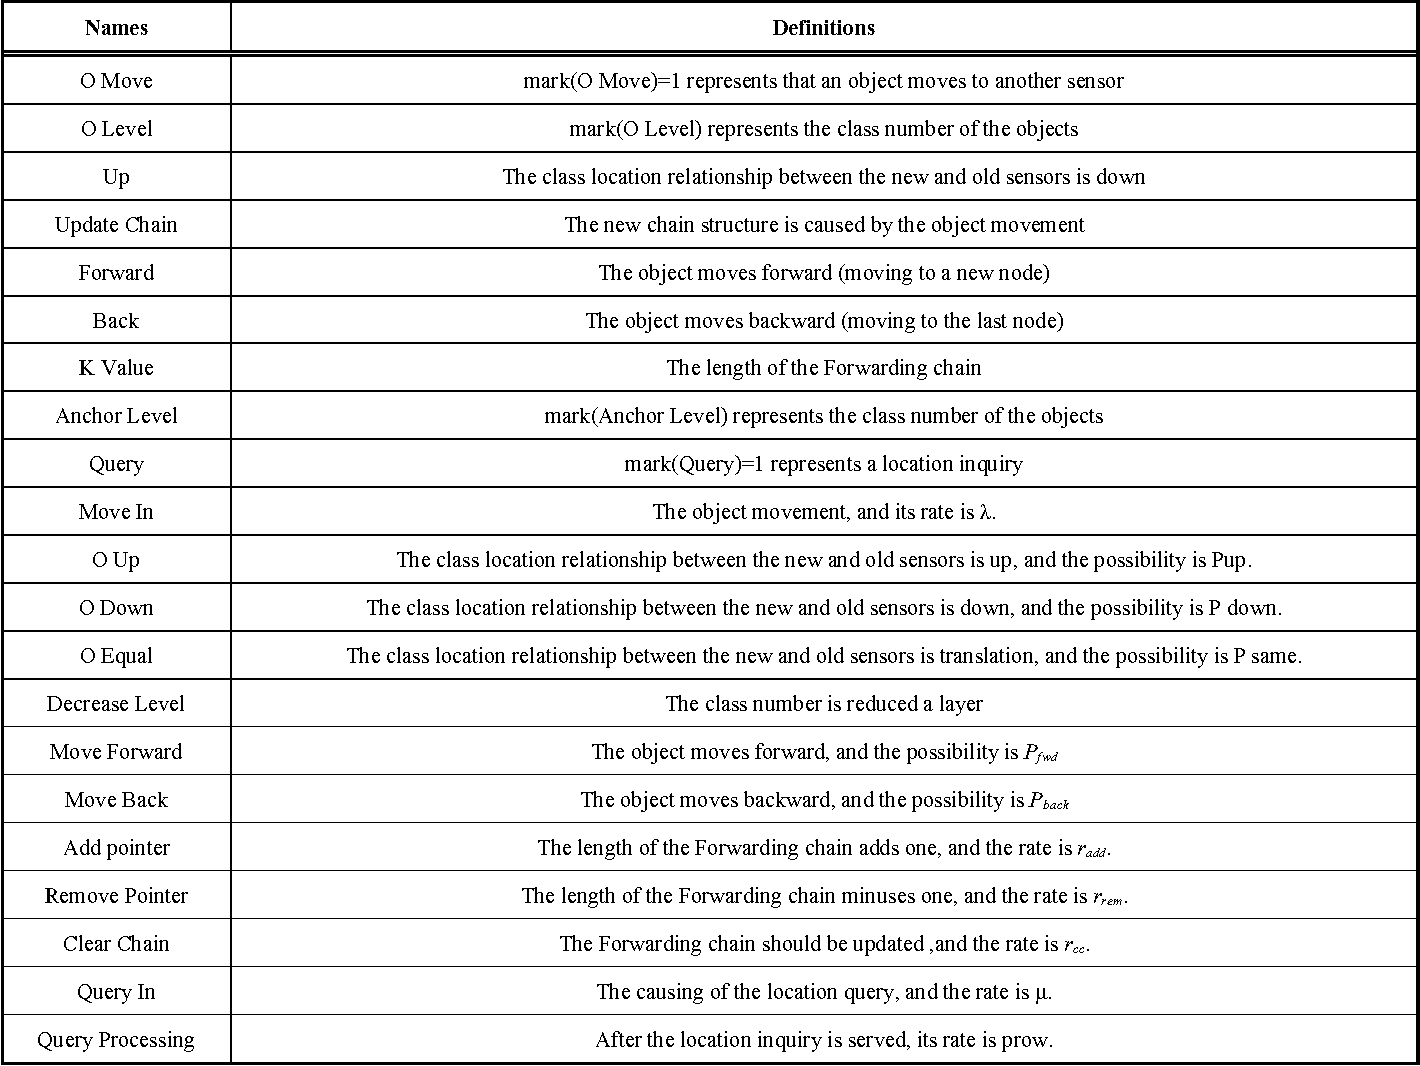 Table 1. The definition of the place and the transition in the SPN model.